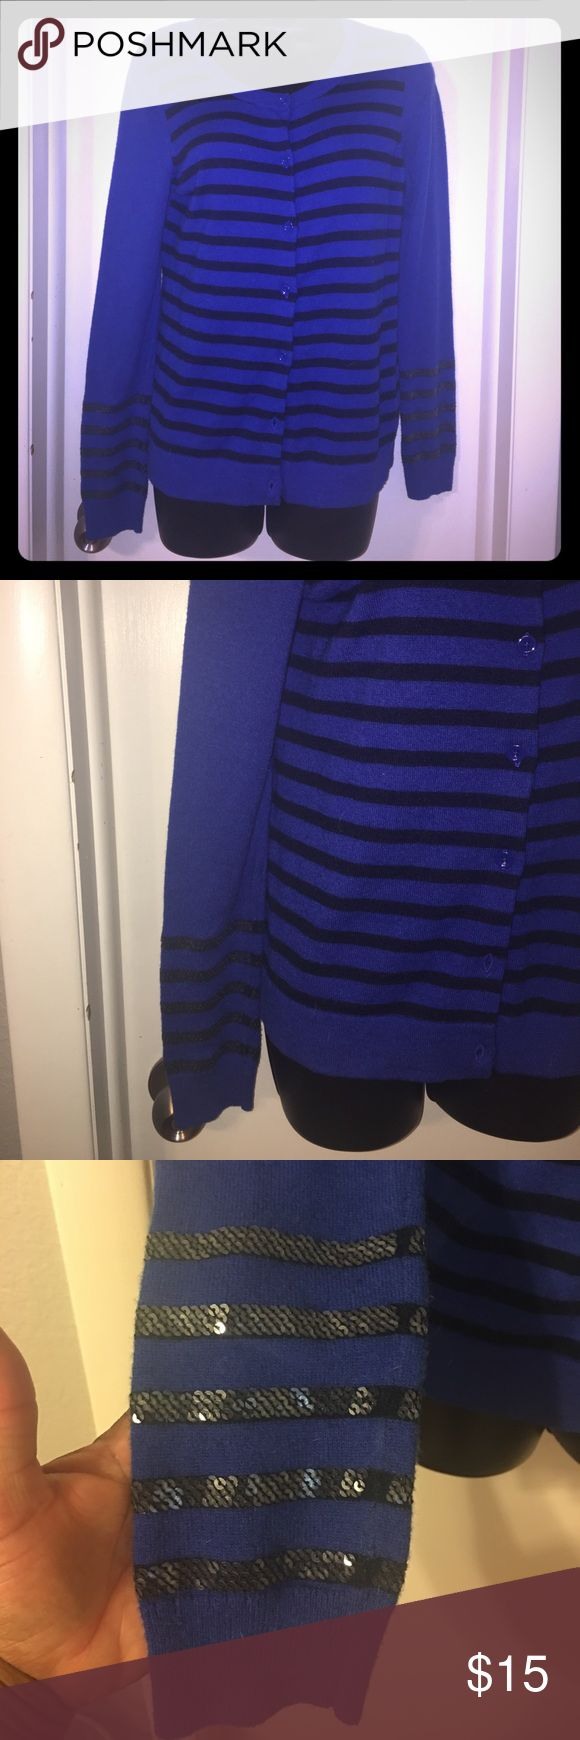 Gap buttons down sequined Cardigan Royal blue and black Gap Cardigan, gently worn.  Perfect for work, school or church. Add it to your closet asap GAP Sweaters Cardigans